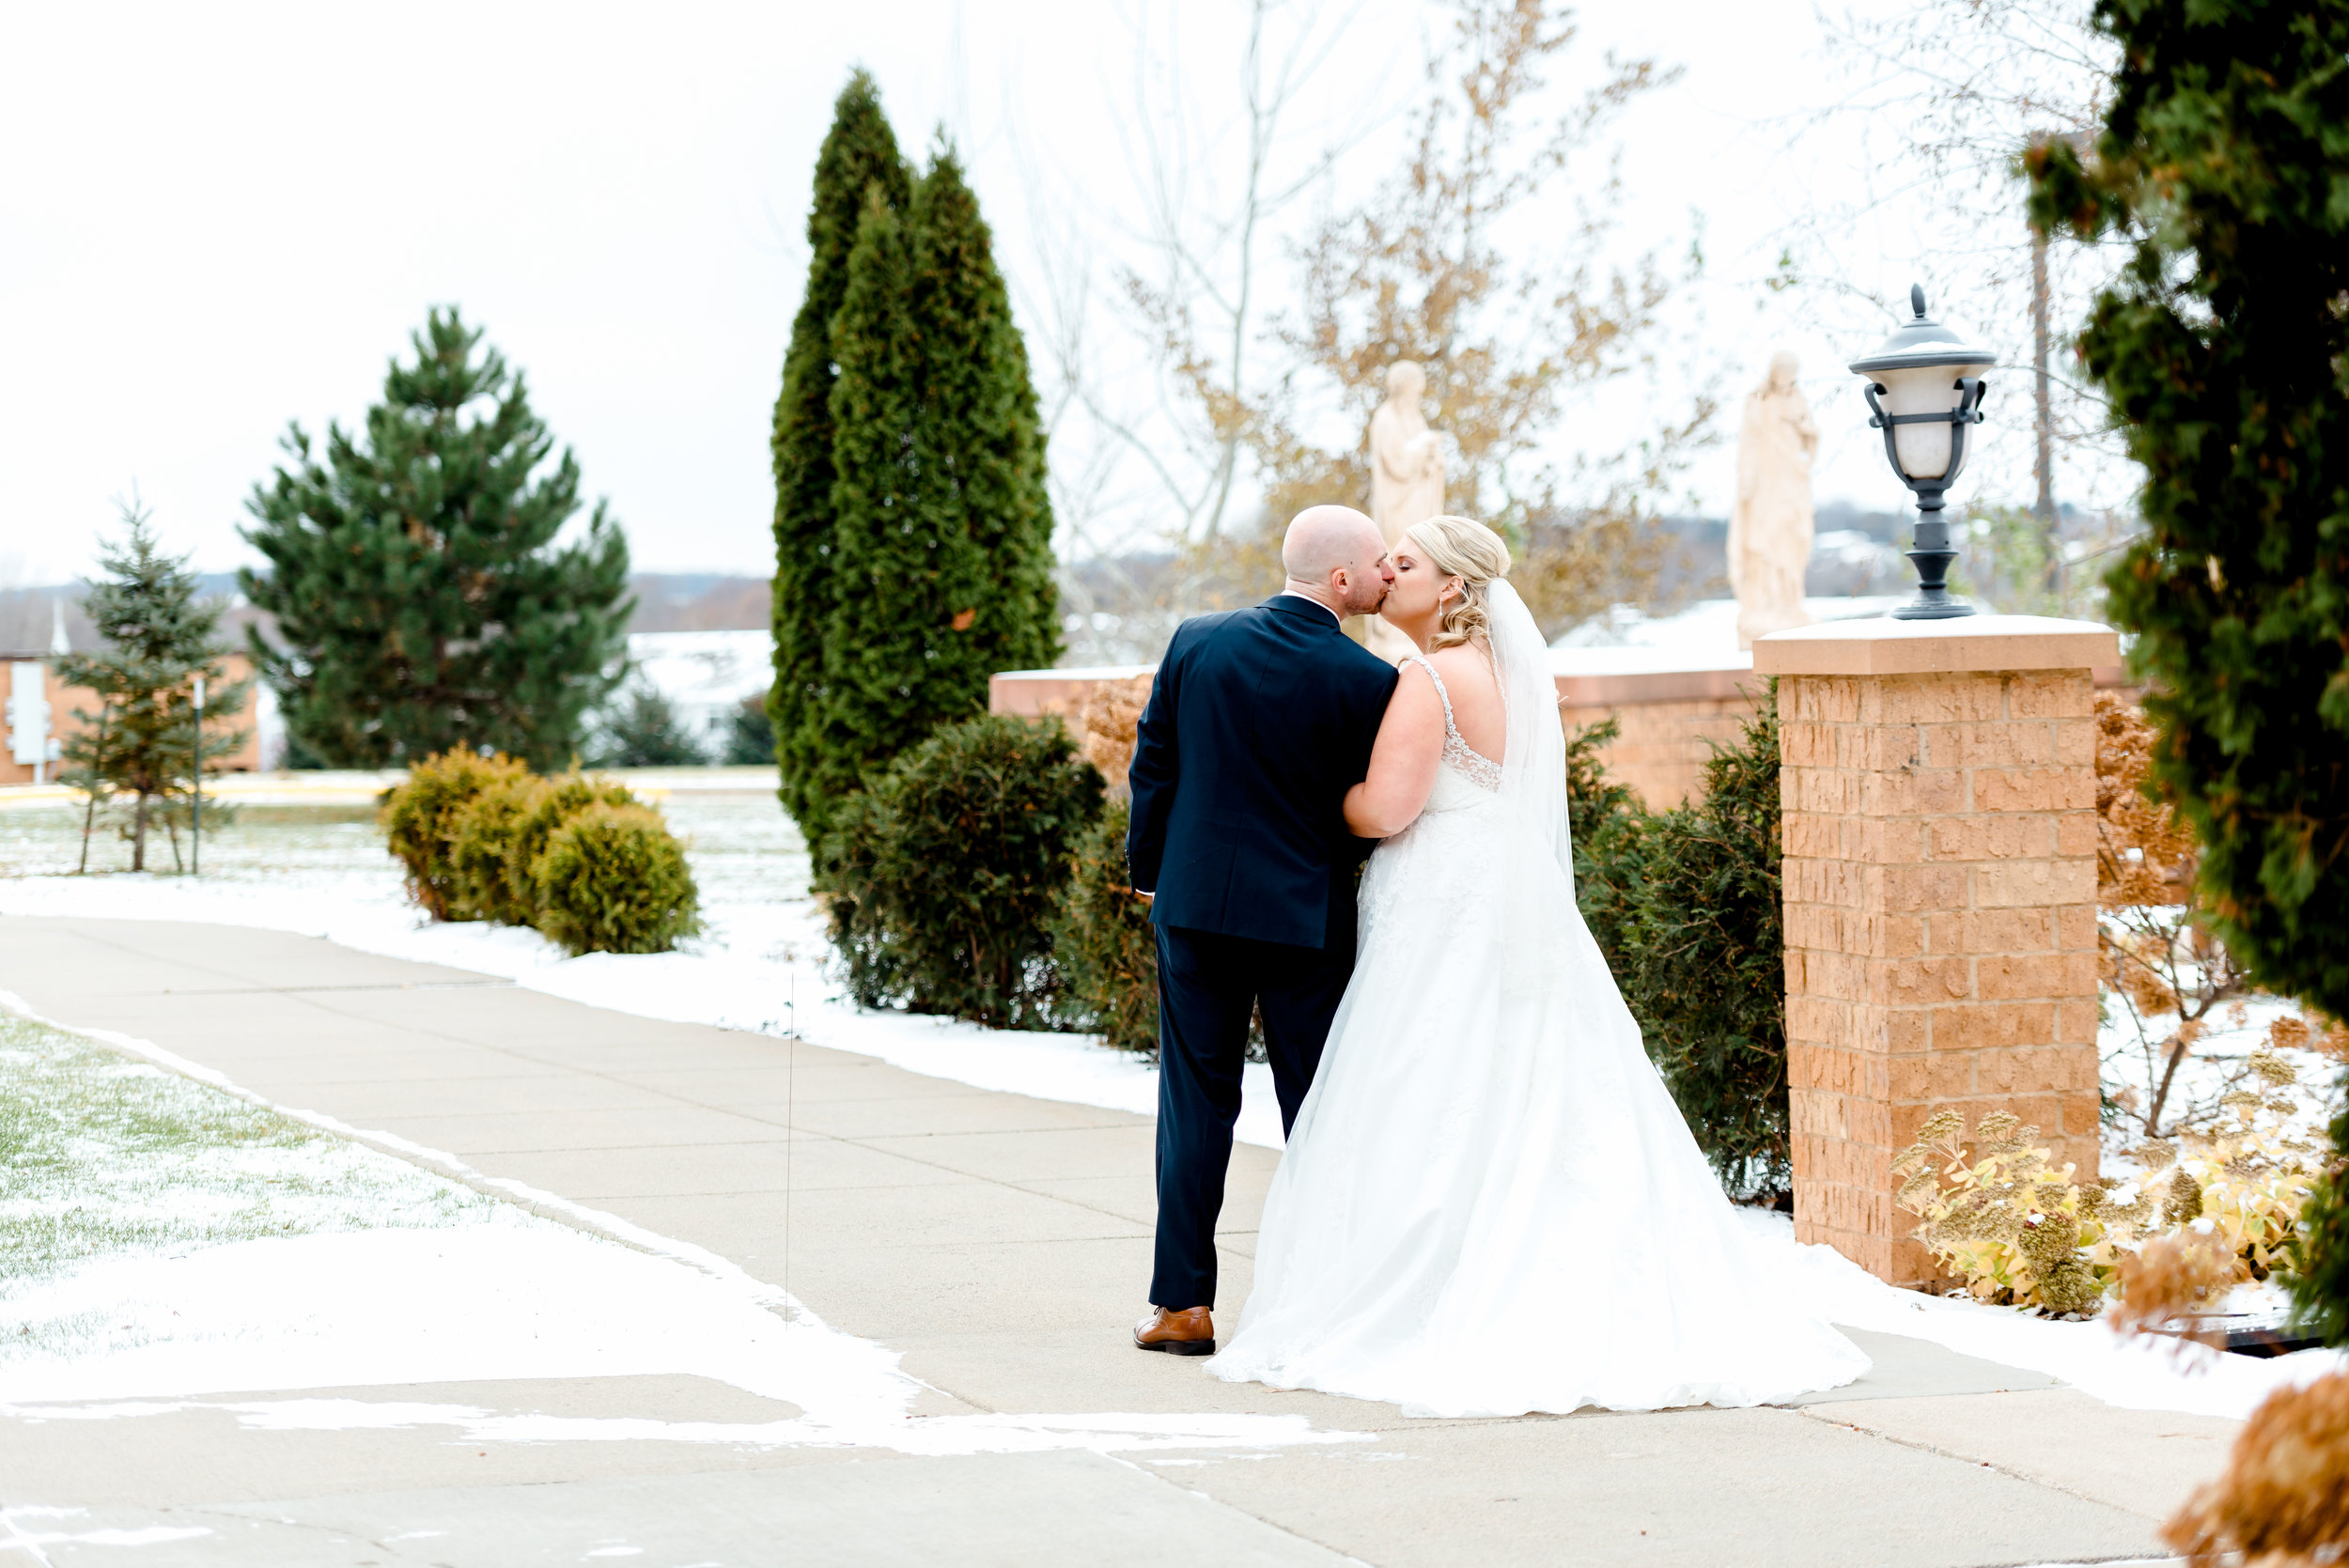 Heather and Taylor - Horse and Hunt Club Wedding - Bride and Groom-59.jpg